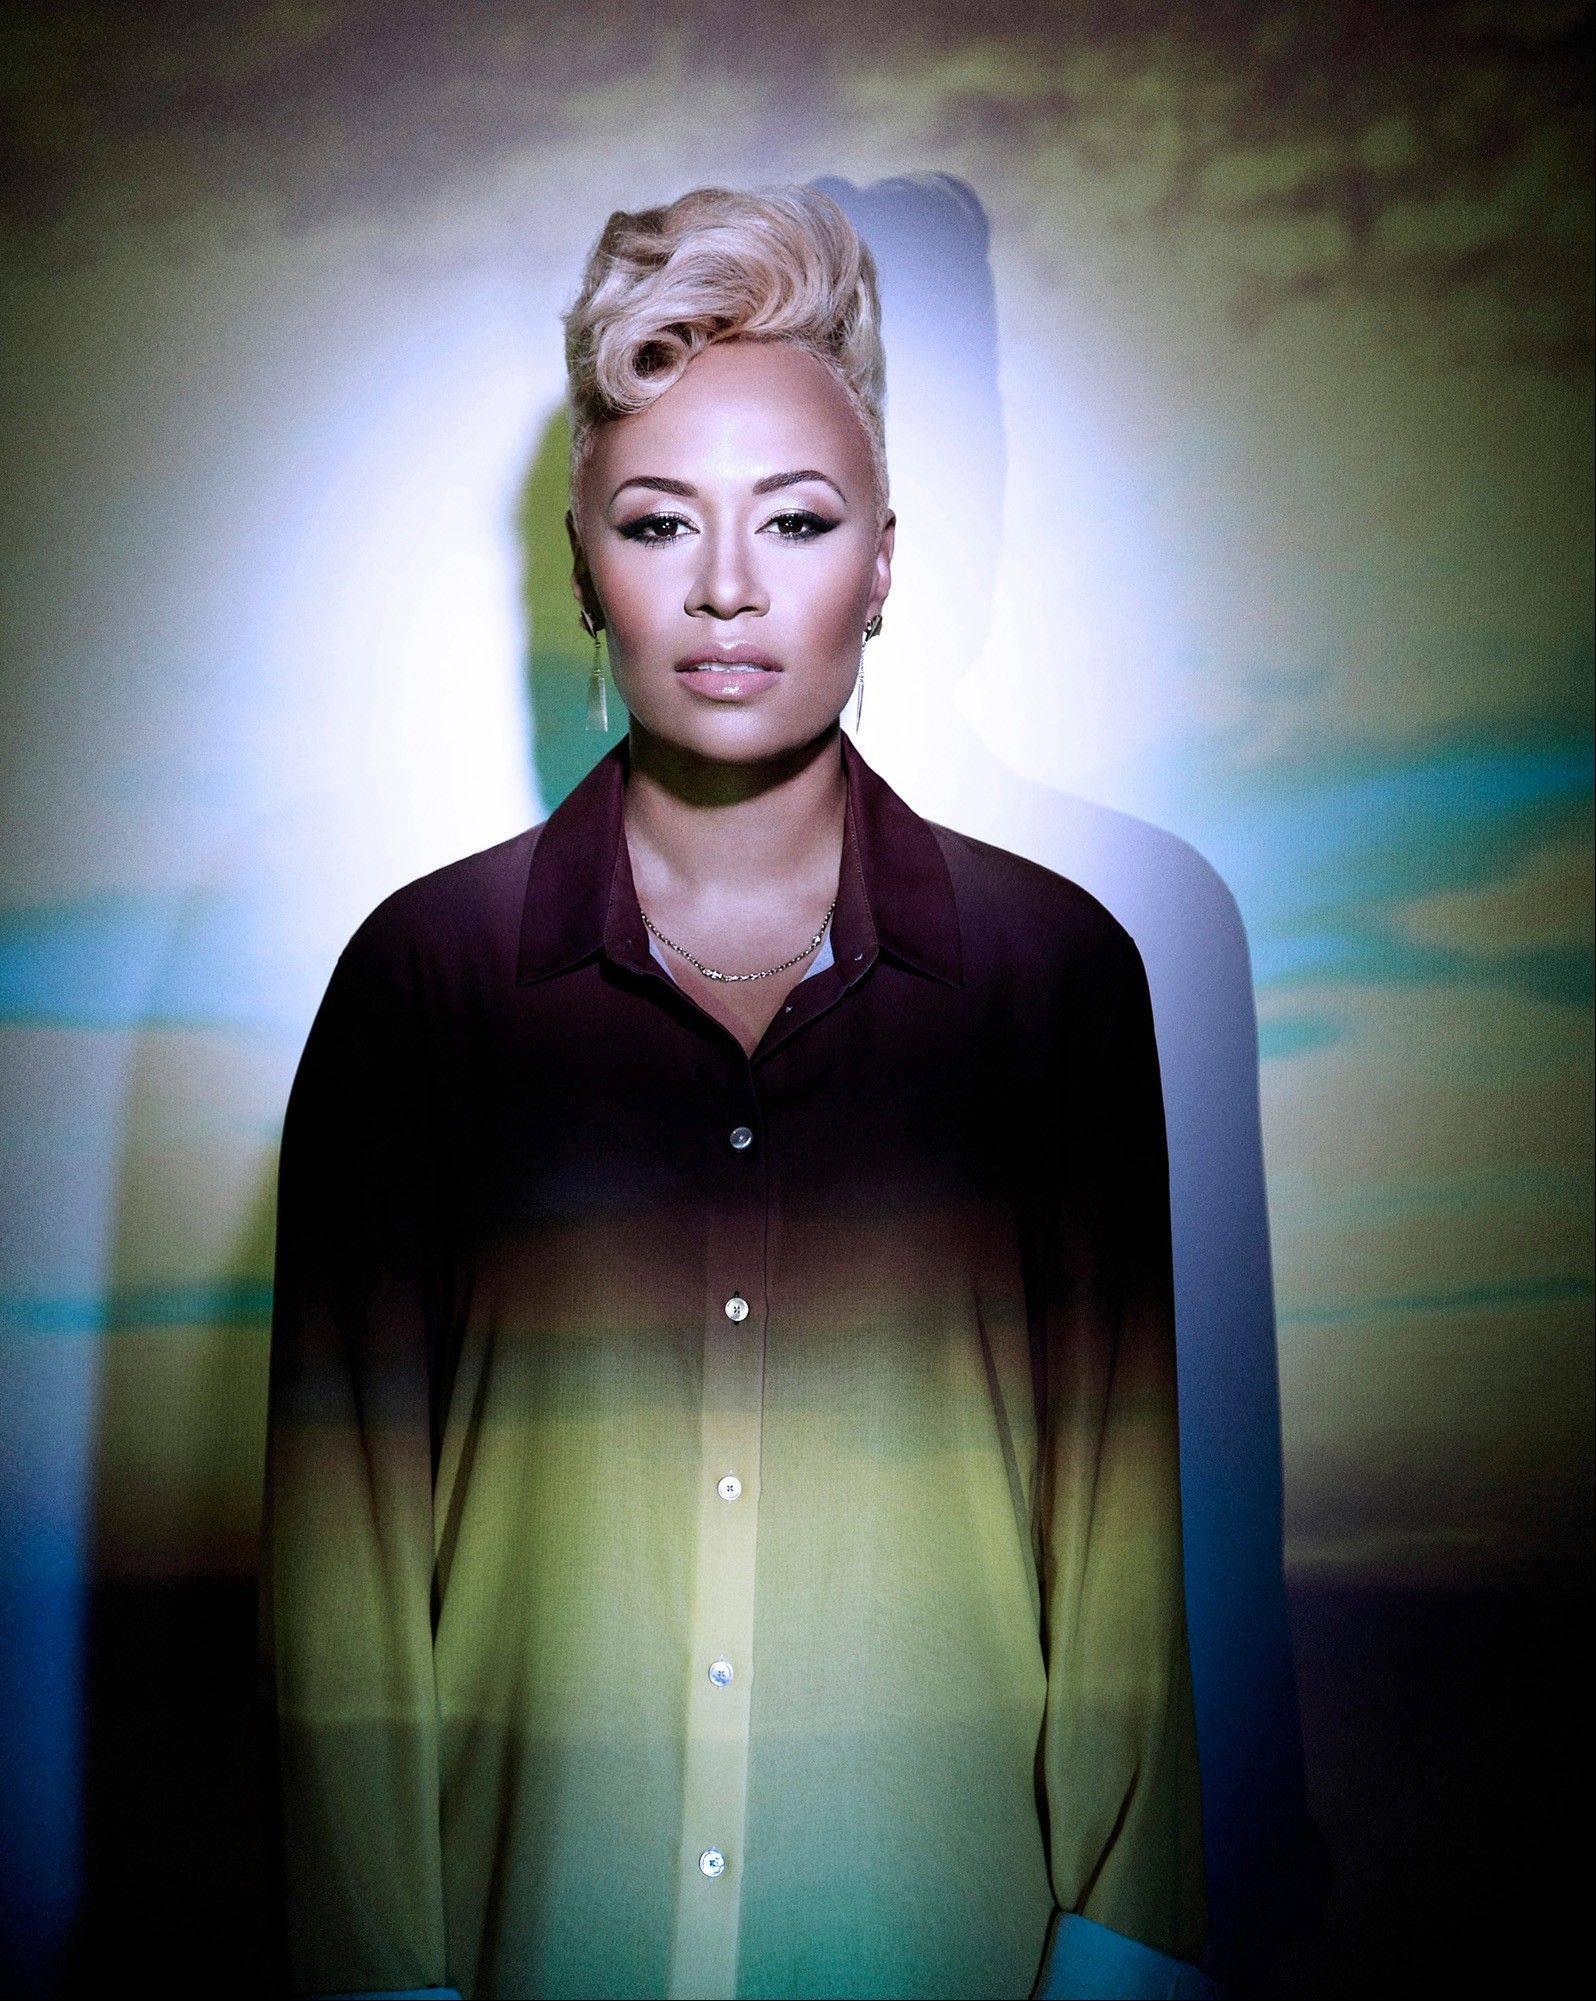 For years, singer-songwriter Emeli Sand� pursued music on the side while she studied neuroscience at the University of Glasgow. She's now on her first U.S. tour.